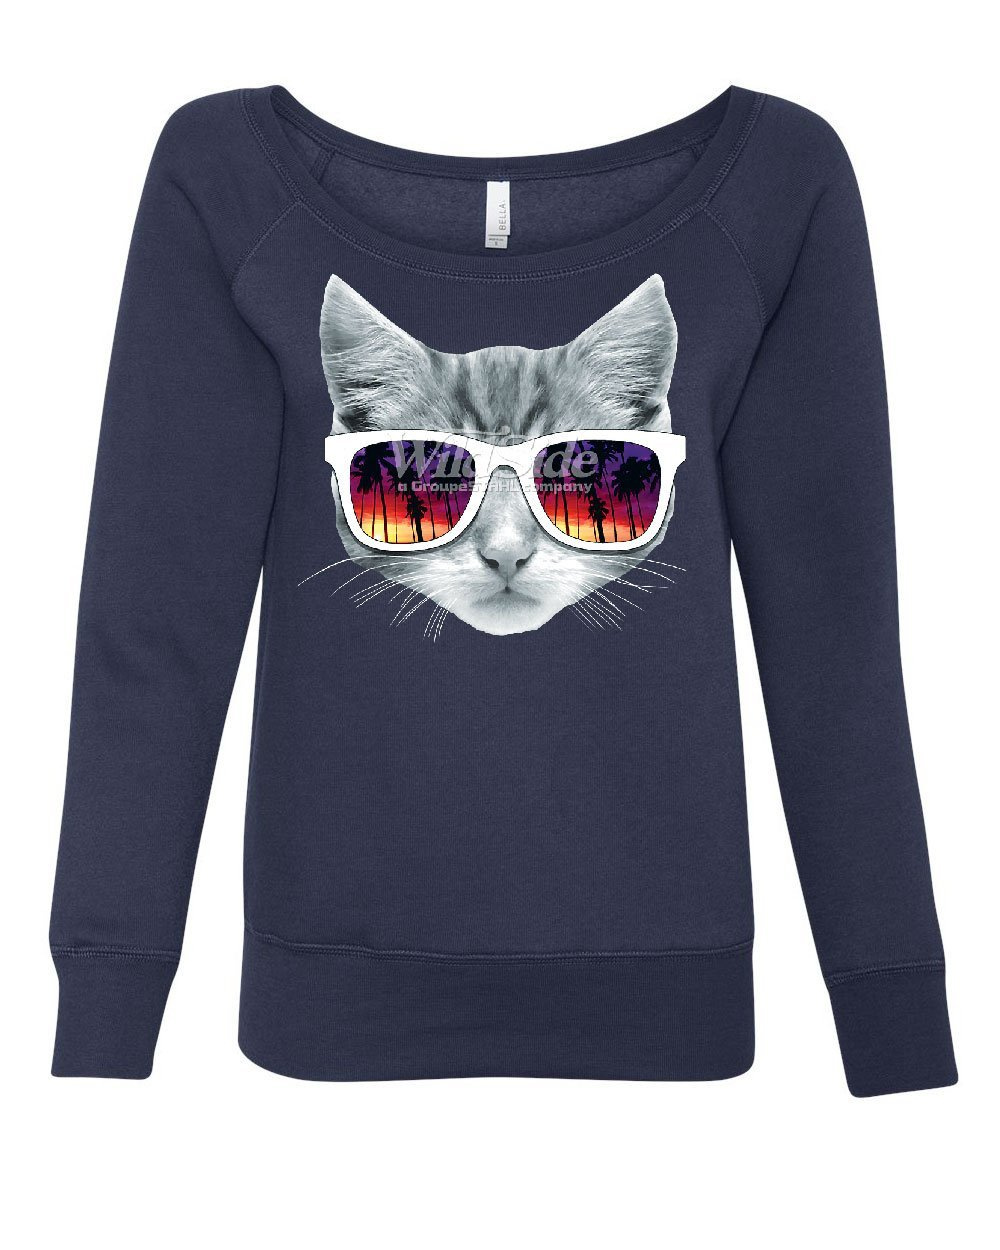 Kitty with Sun Glasses Women's Sweatshirt Cute Kitten Palm Trees Cat Lovers Navy Blue 2XL